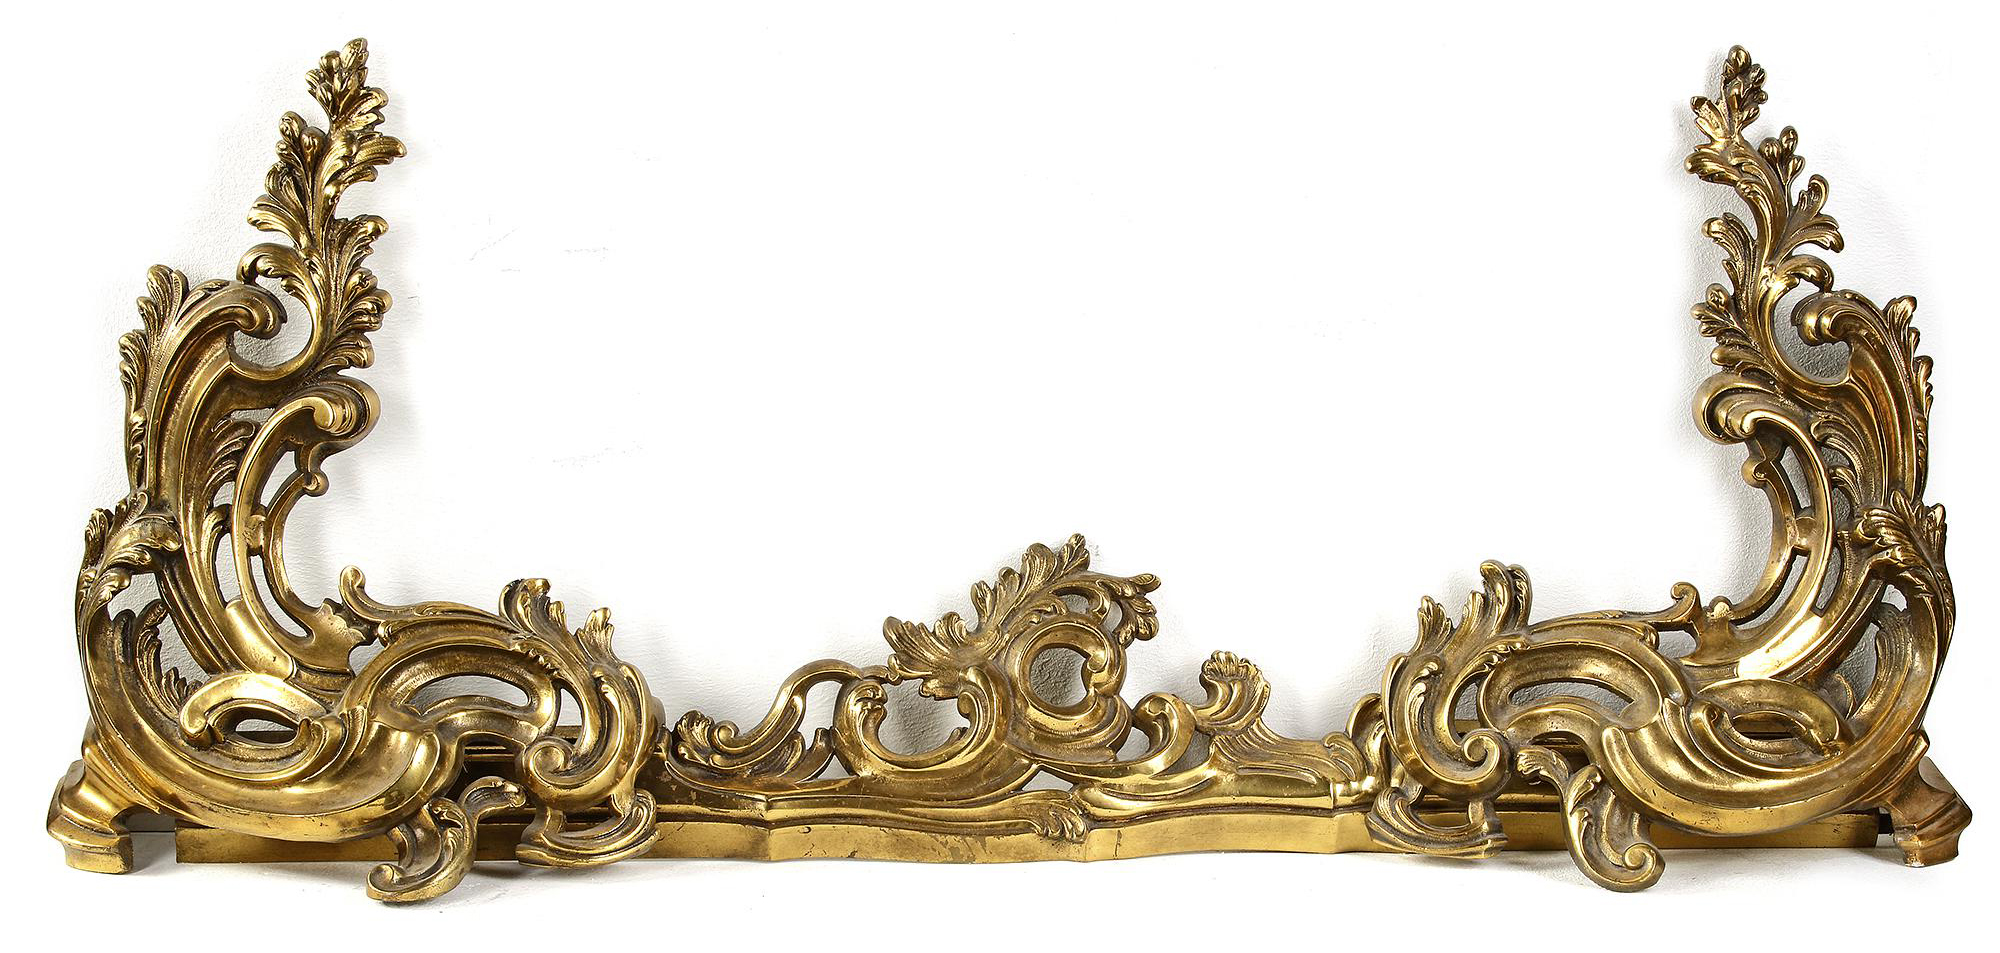 A FRENCH CHISELED AND GILT BRONZE ANDIRON, 19TH CENTURY